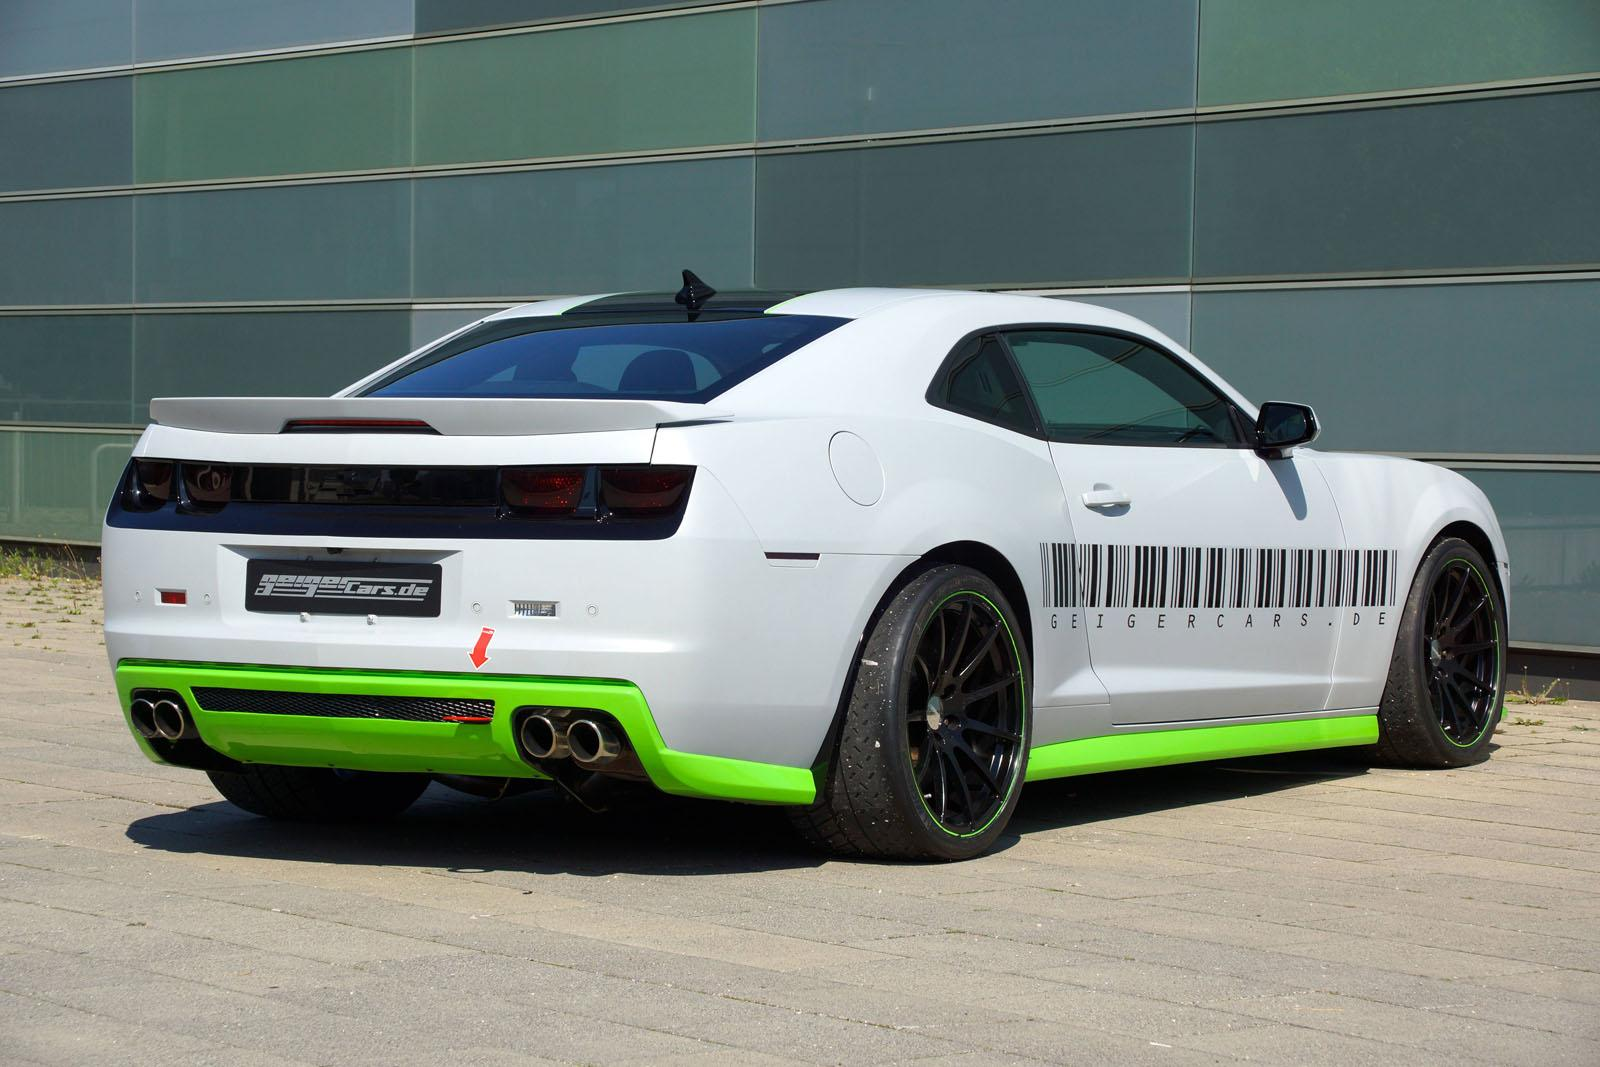 Chevrolet Cars News Geigercars Tuned Camaro Ls9